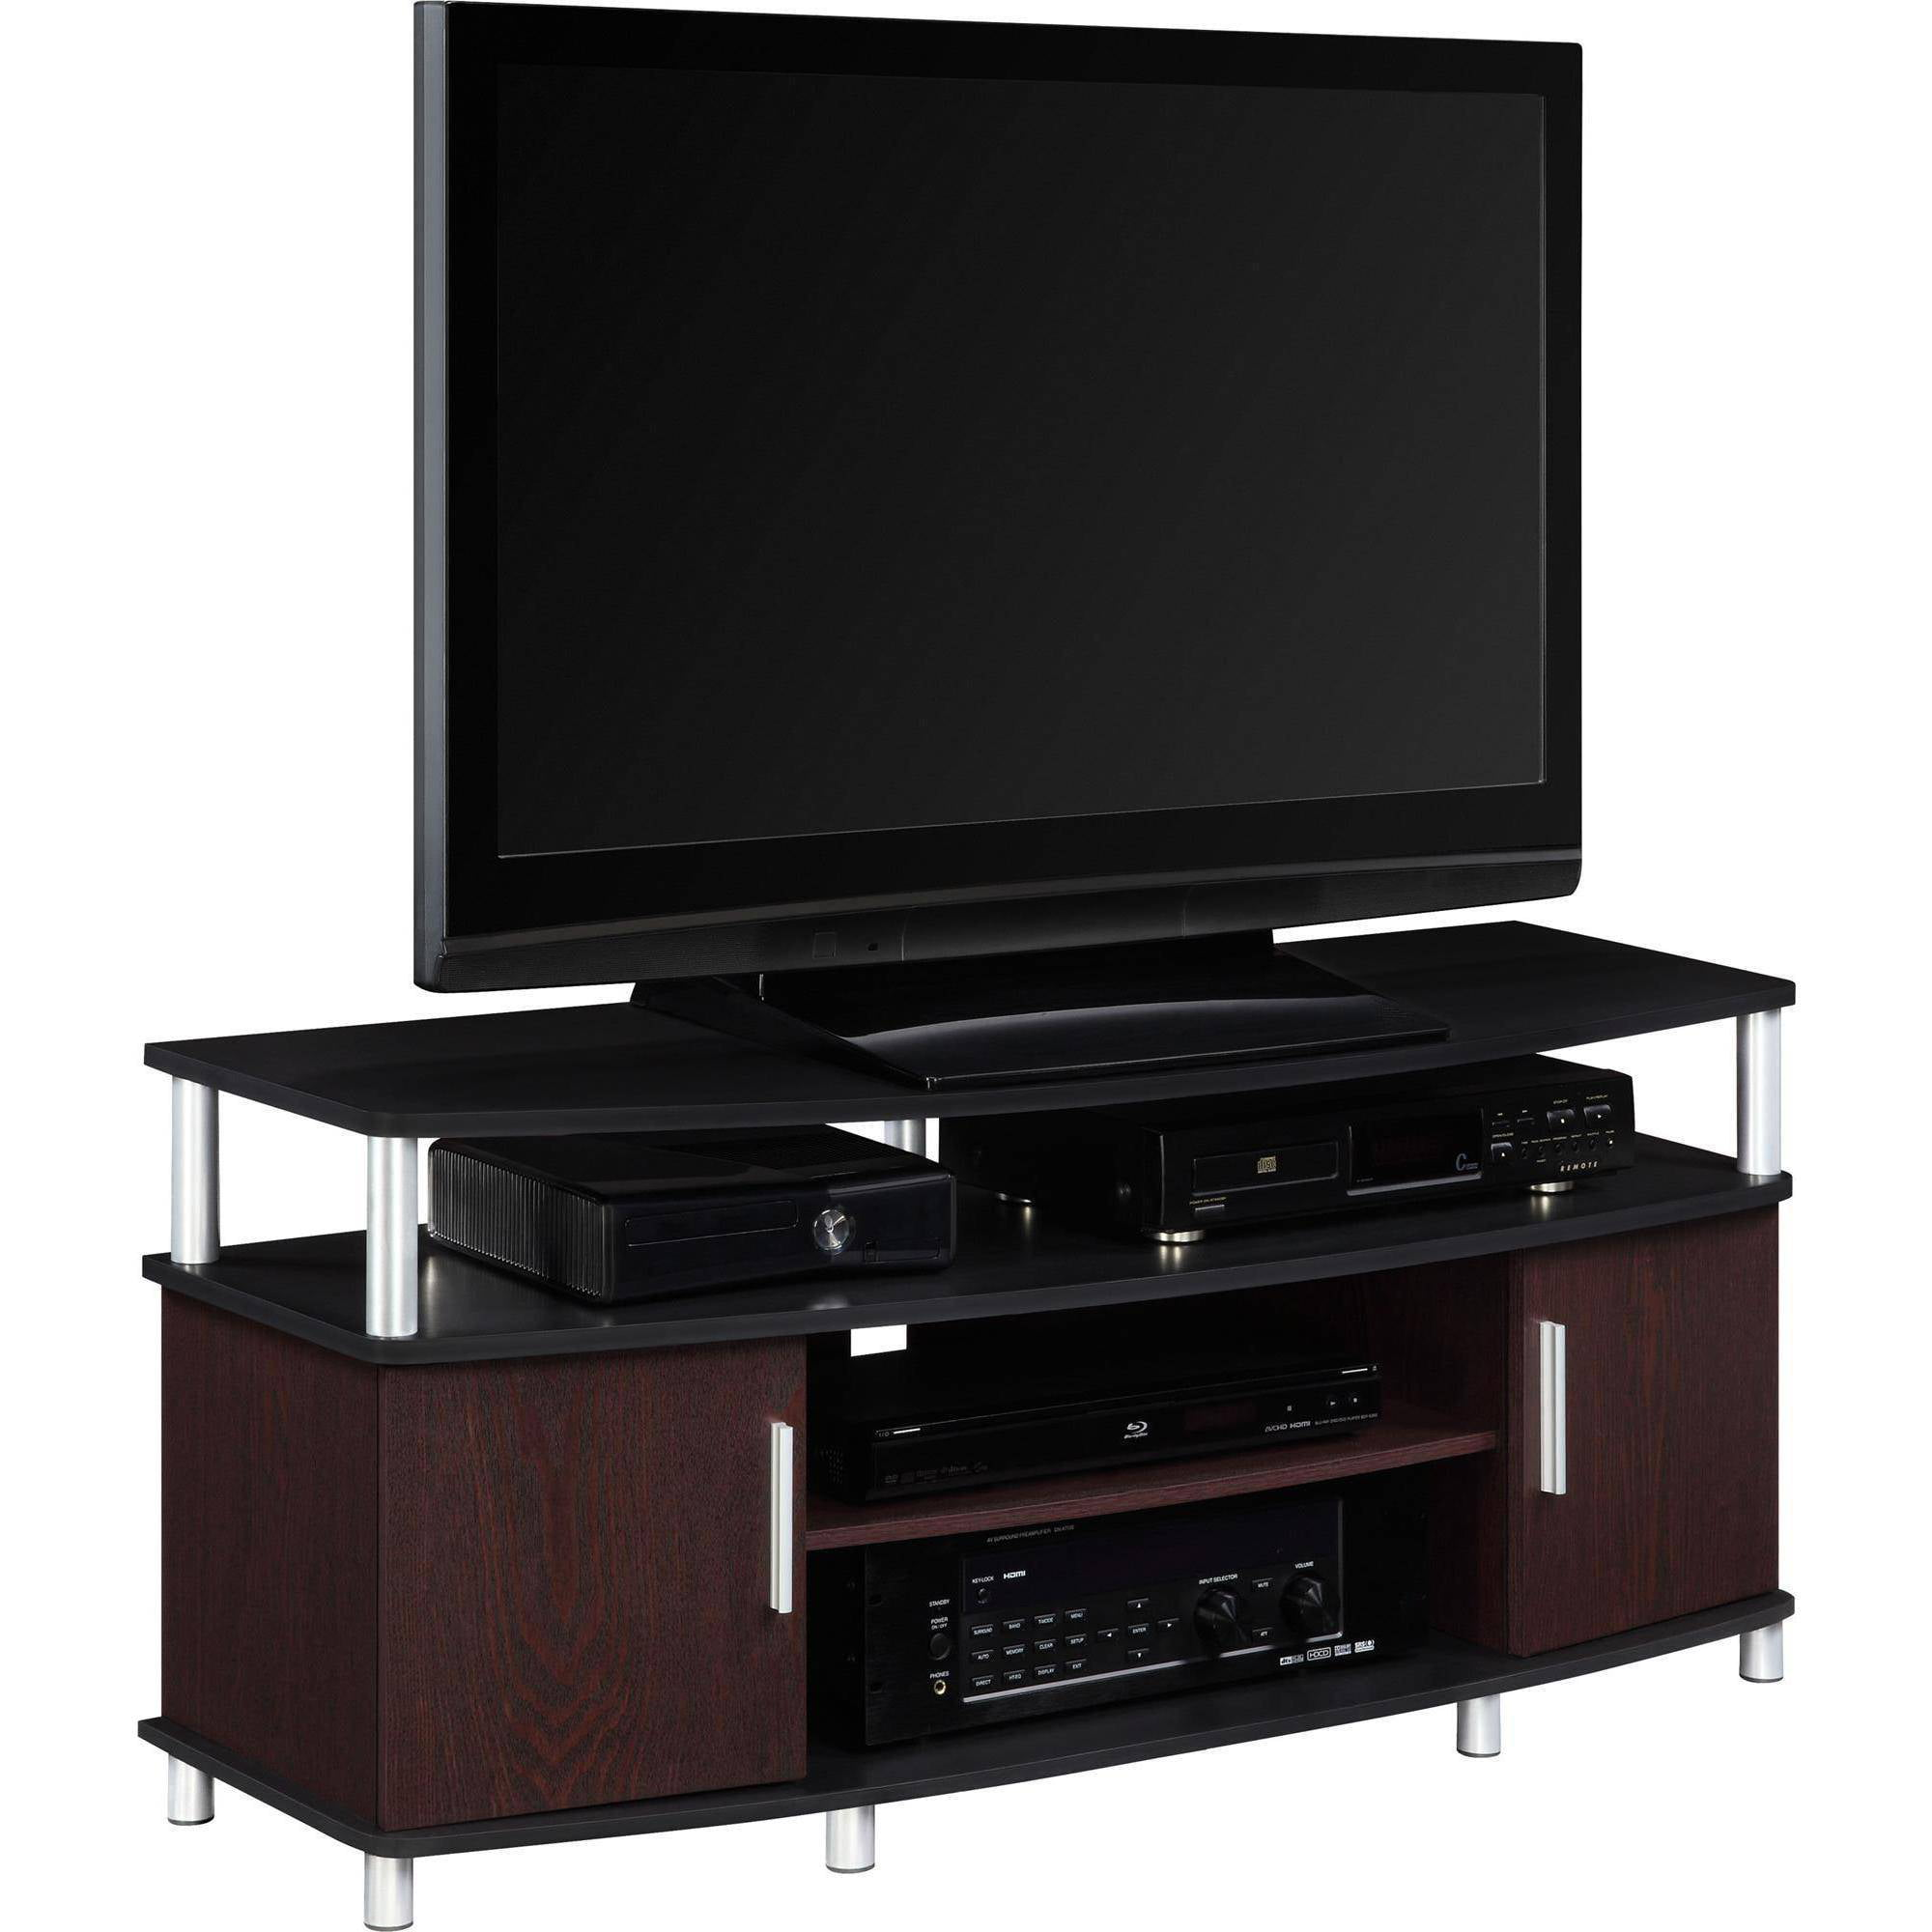 Carson Tv Stand For Tvs Up To 50 Multiple Finishes Walmart Com